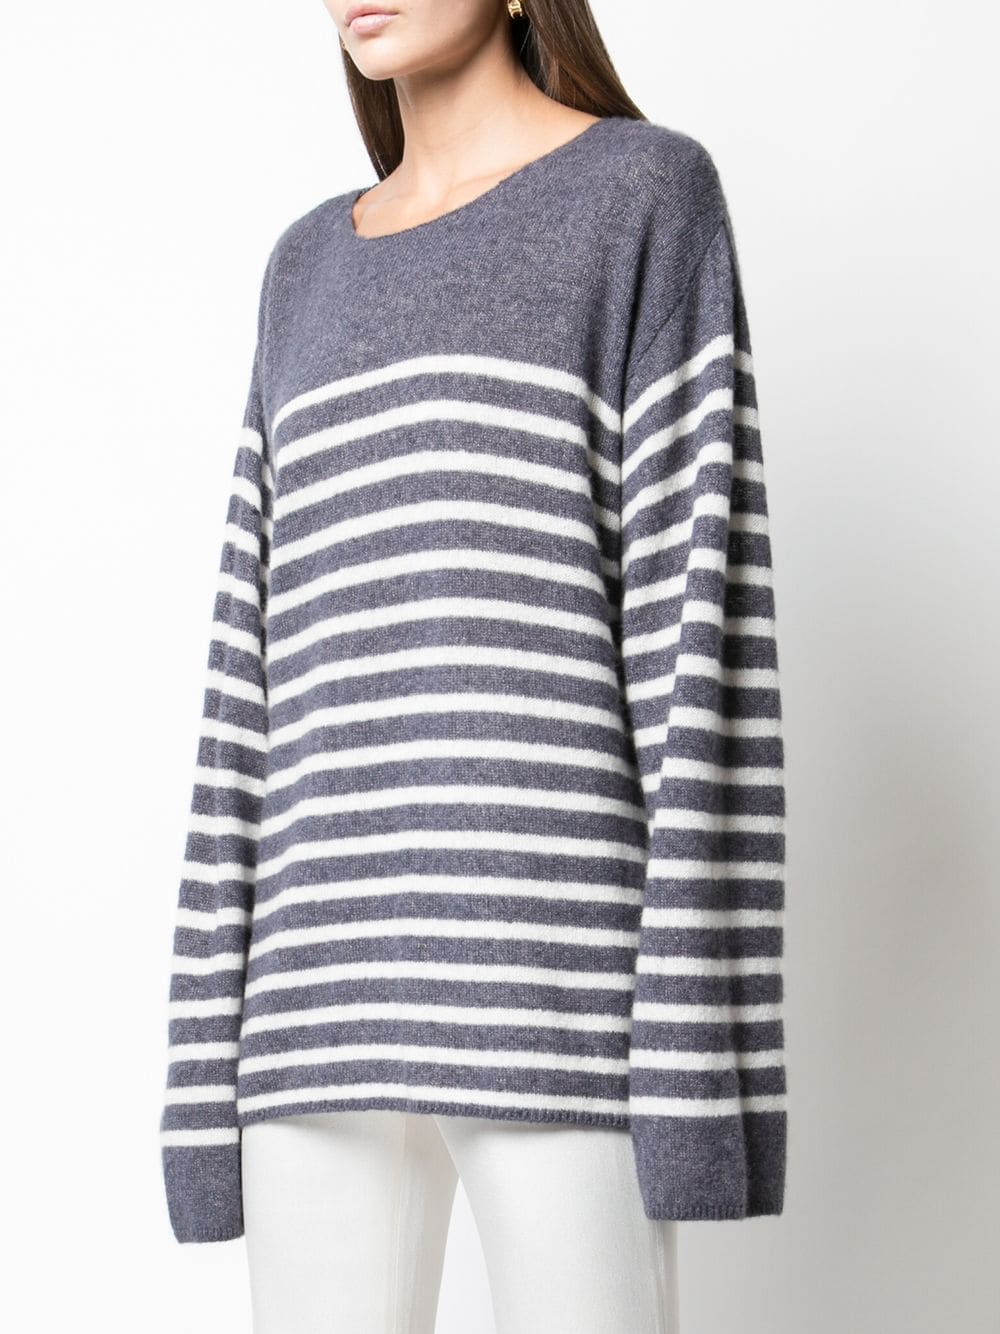 BRETON STRIPE SWEATER IN BRUSHED CASHMERE